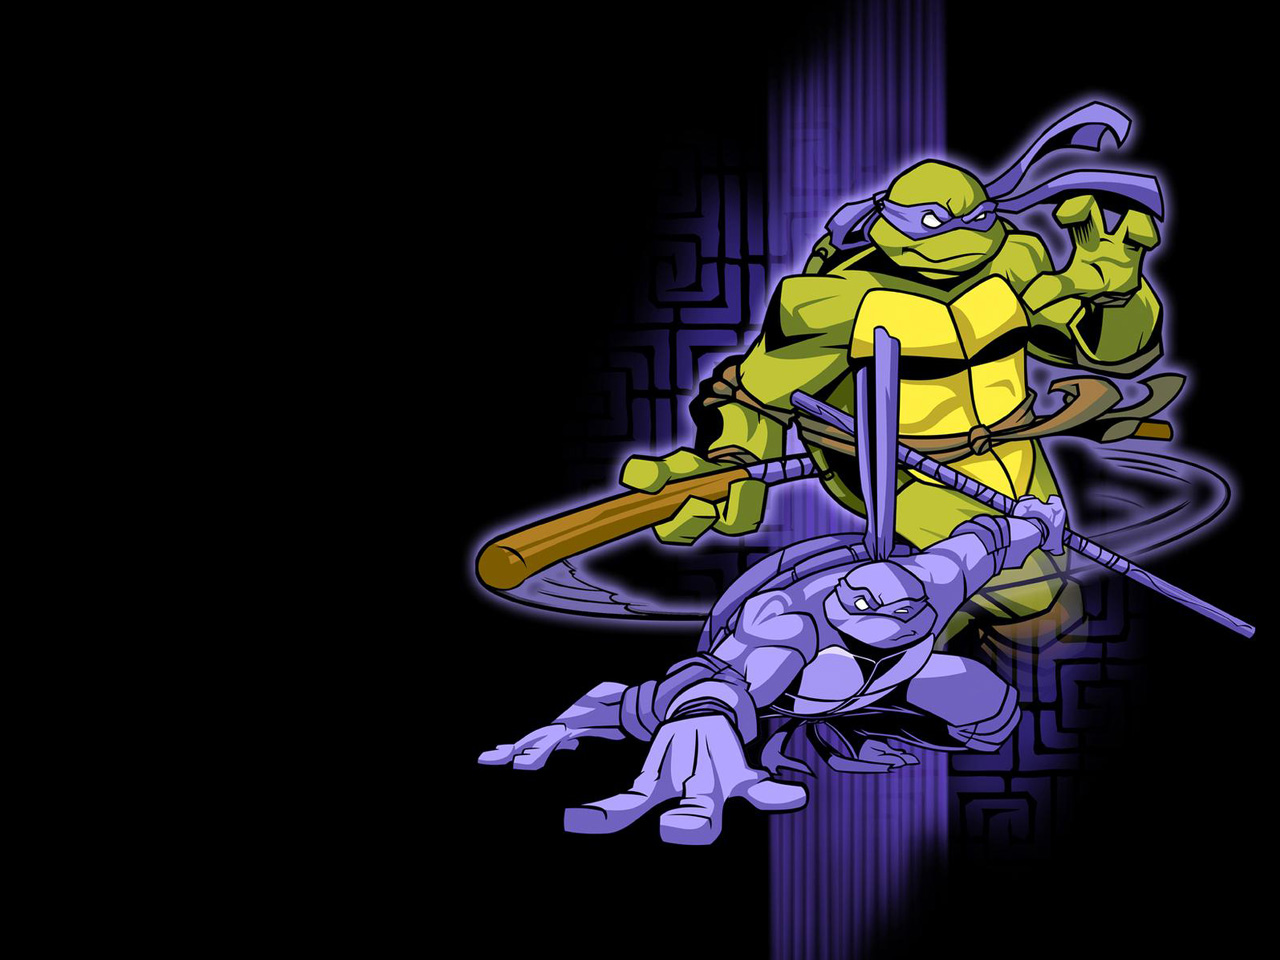 TMNT wallpaper 2003-2009 series (27)